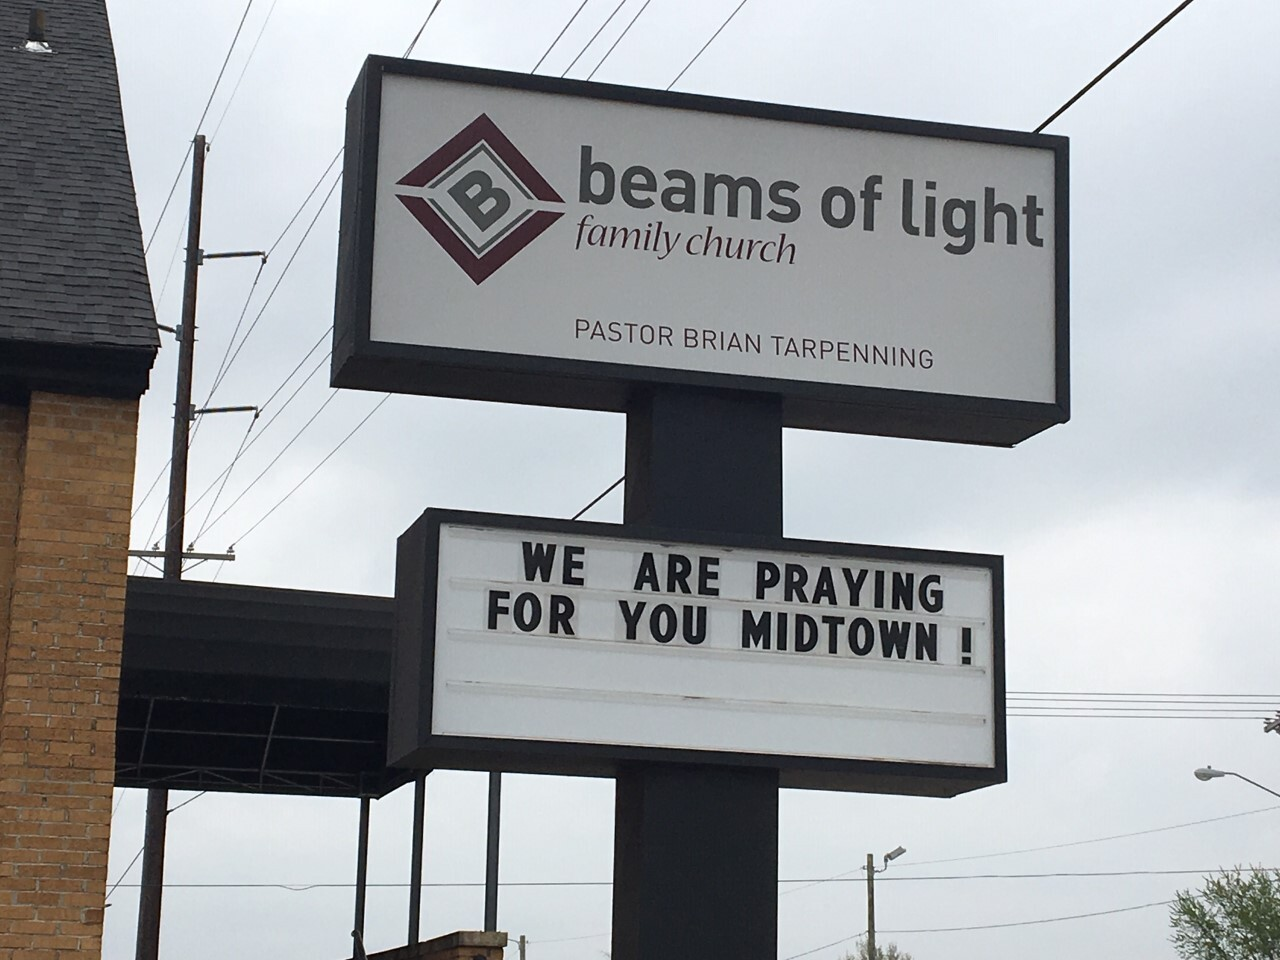 beams of light - We are praying for you midtown! sign